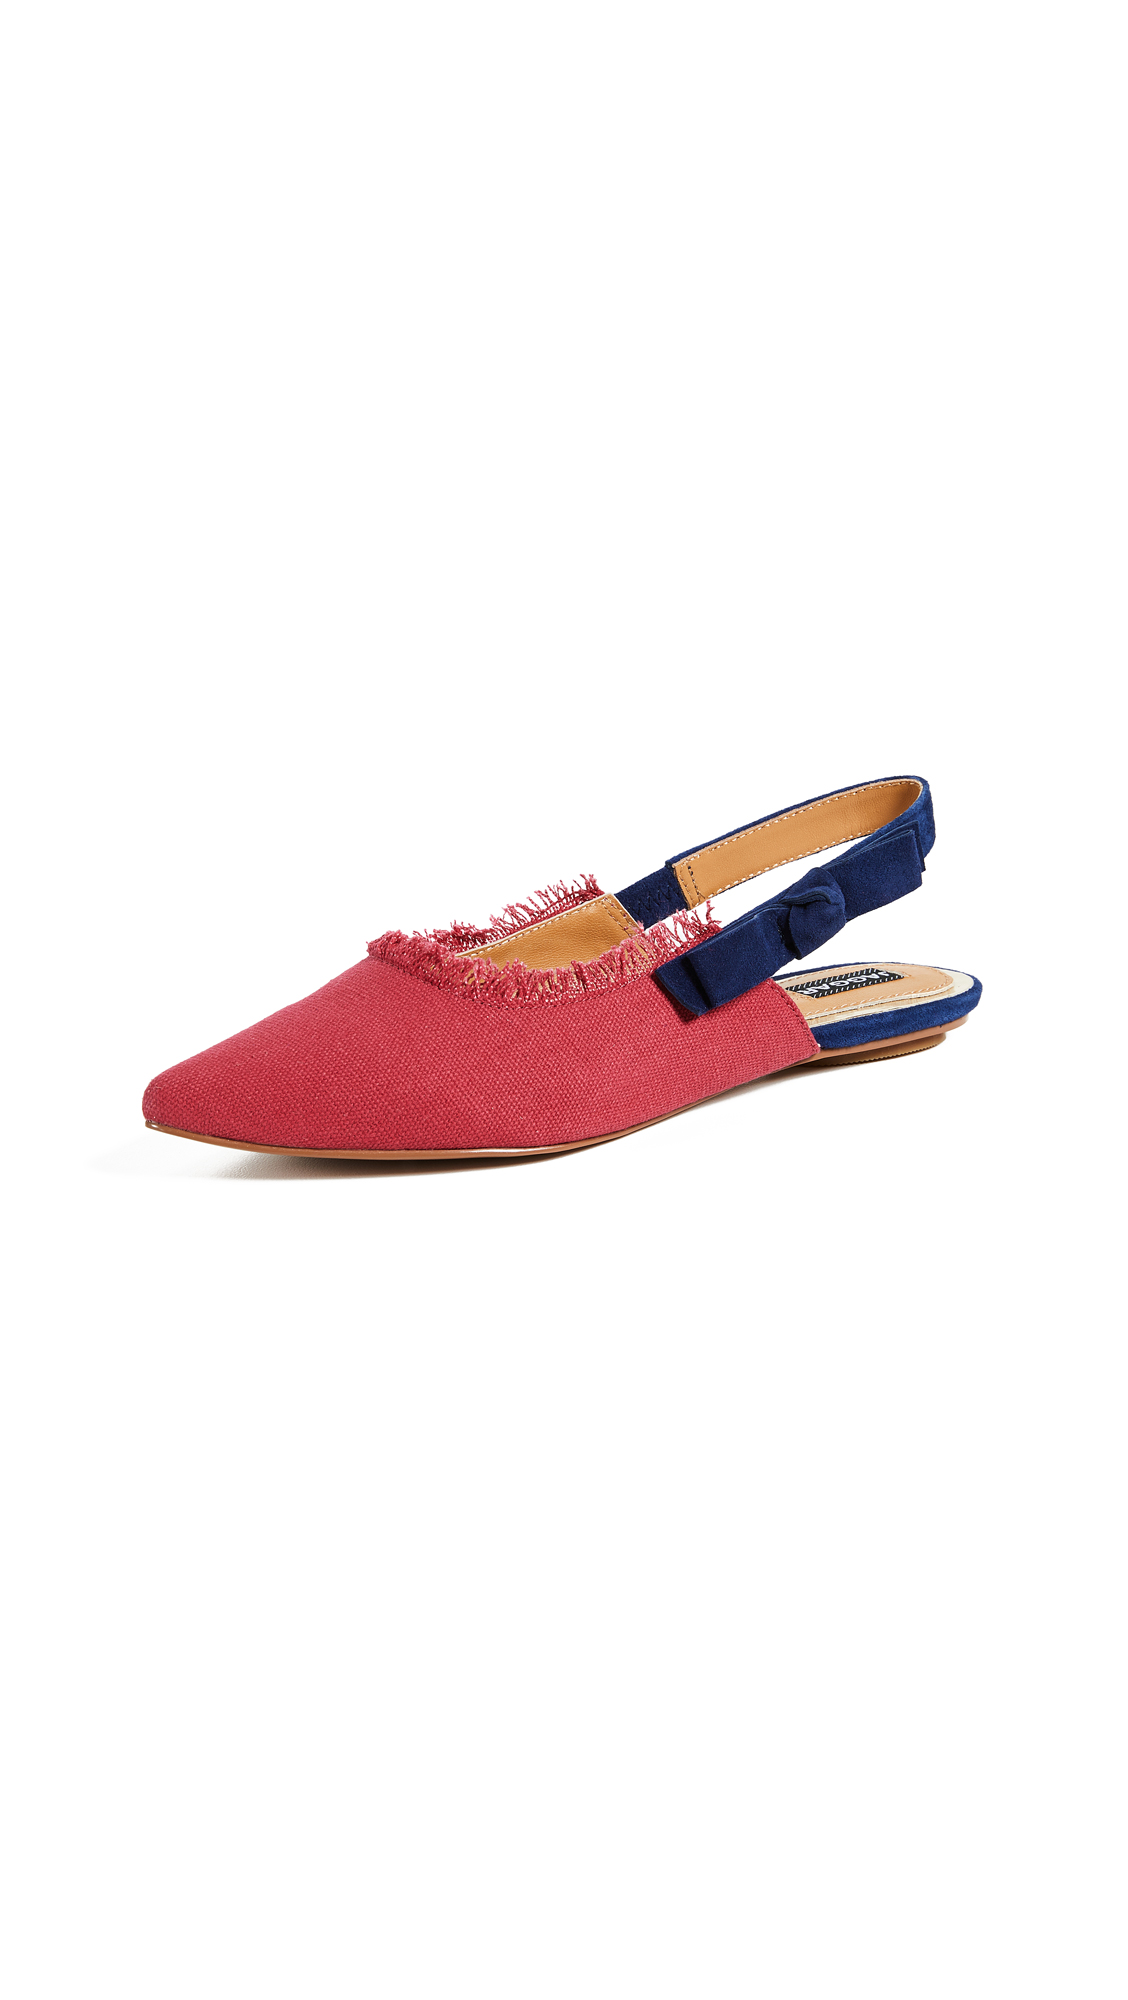 JAGGAR Slight Point Toe Slingback Flats - Cranberry